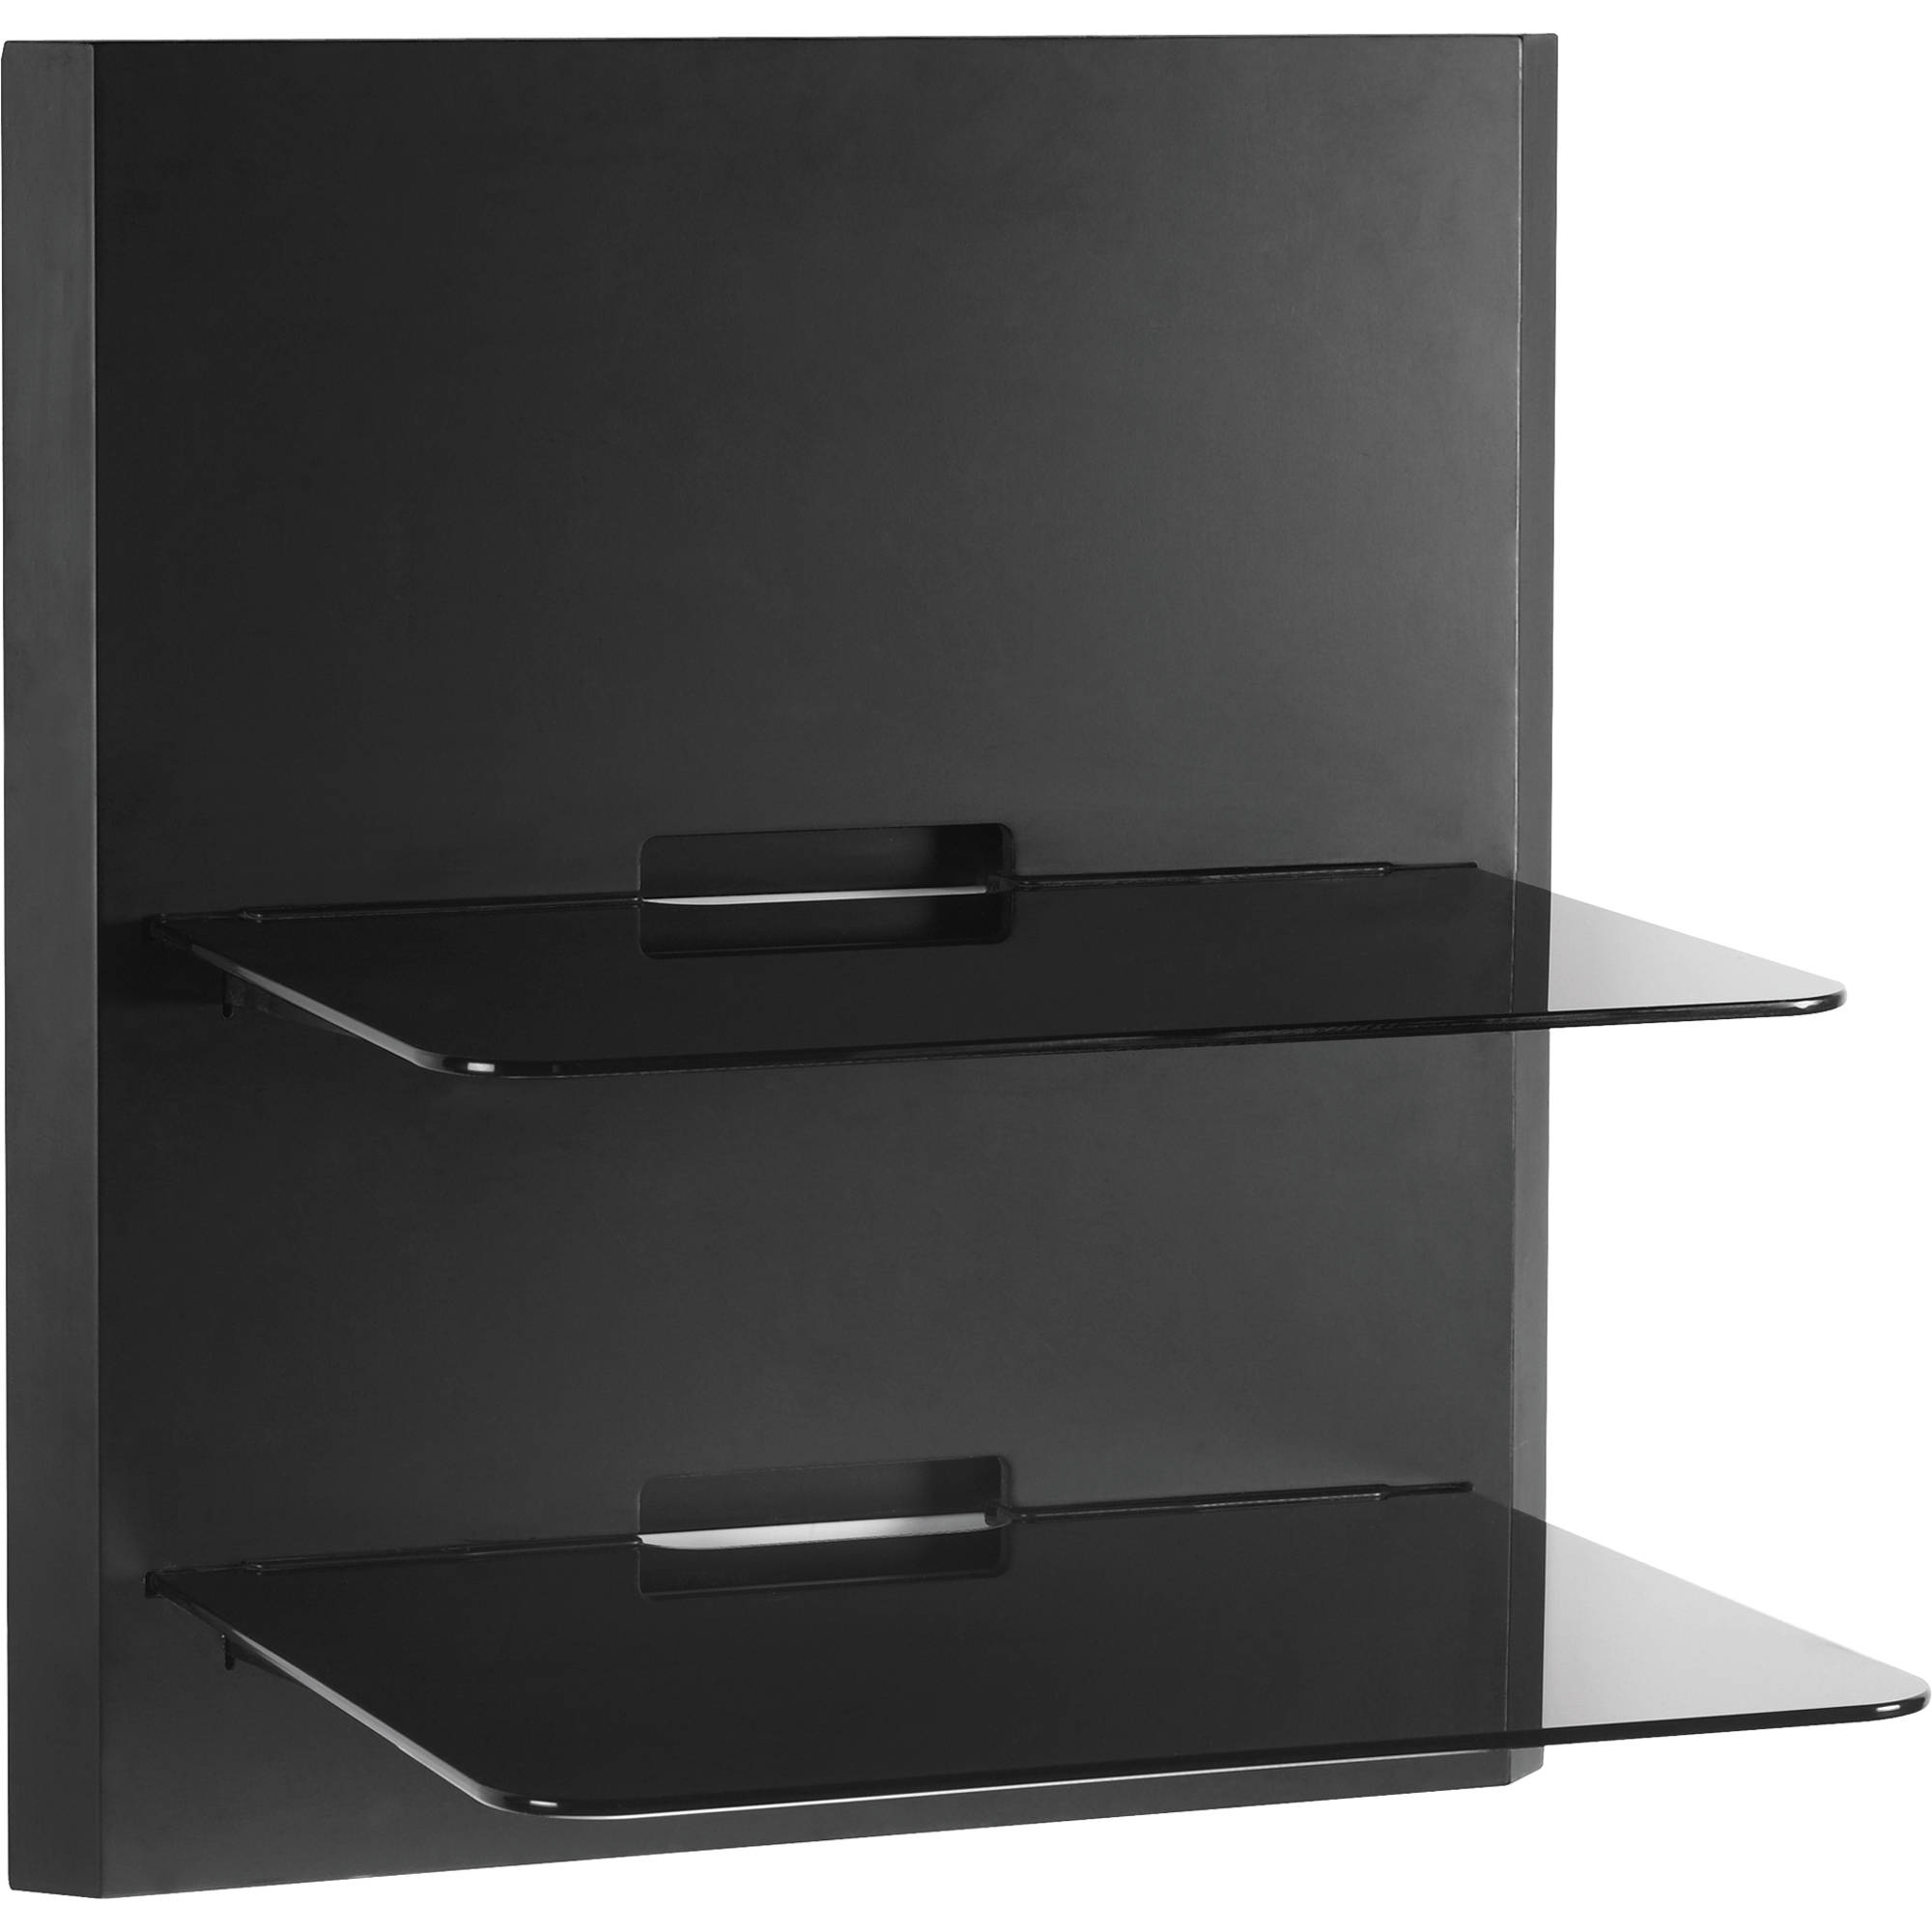 stainless shelf tarrison mount wall shelves steel to